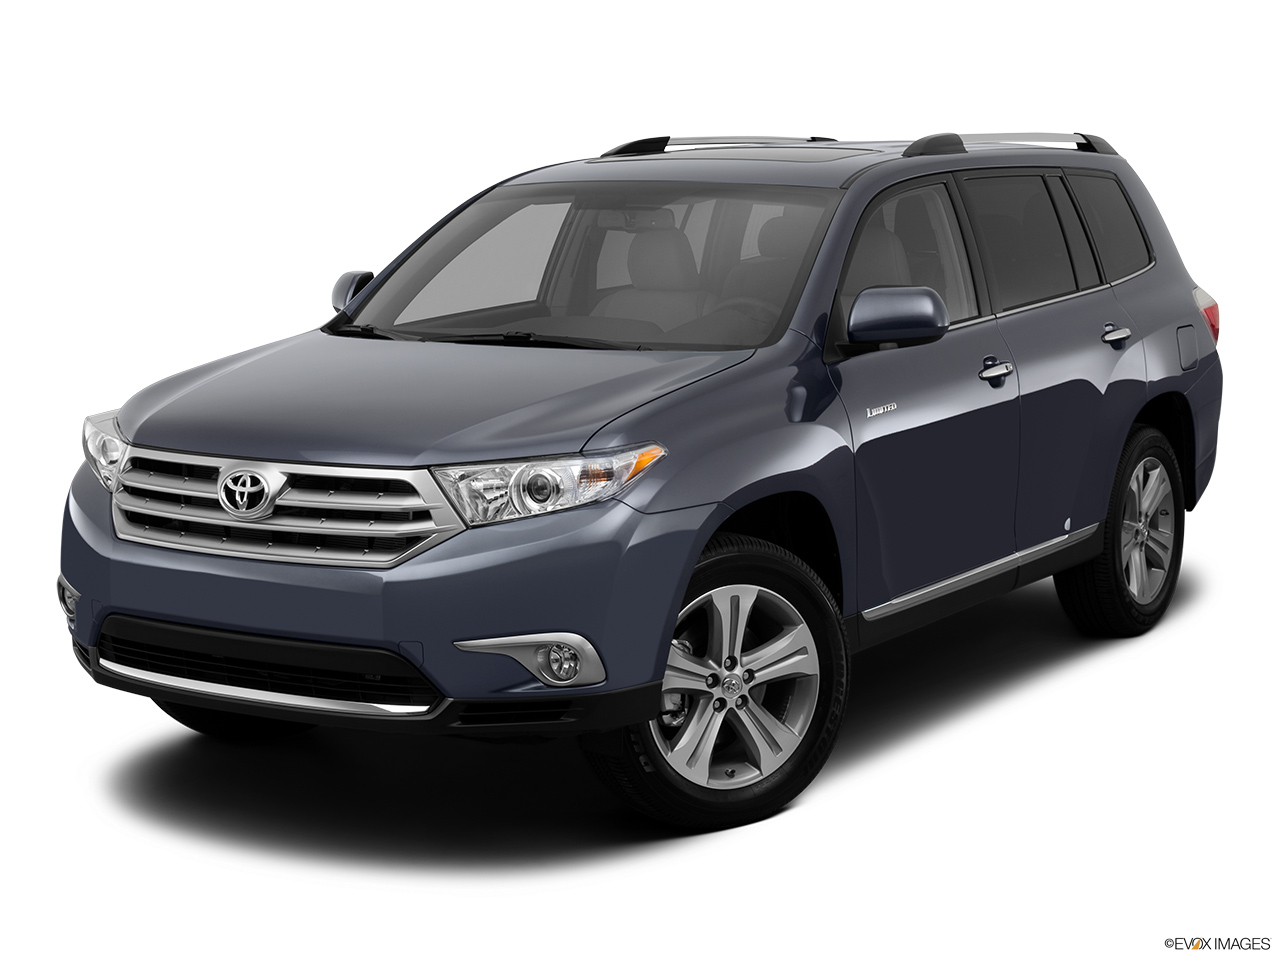 2014 toyota highlander fwd v6 limited platinum. Black Bedroom Furniture Sets. Home Design Ideas